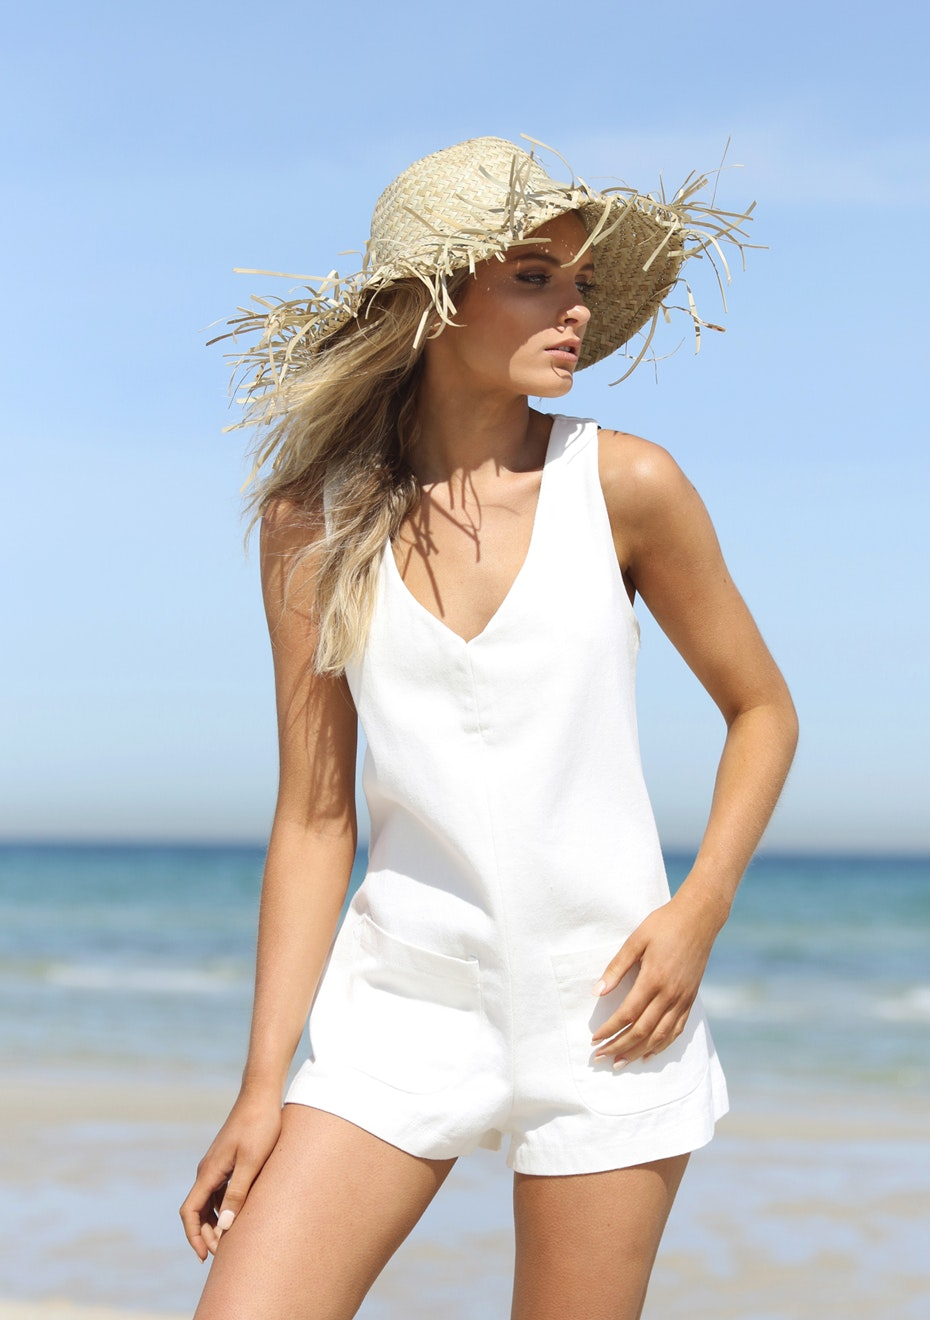 Madison - PISTOL ROMPER - WHITE